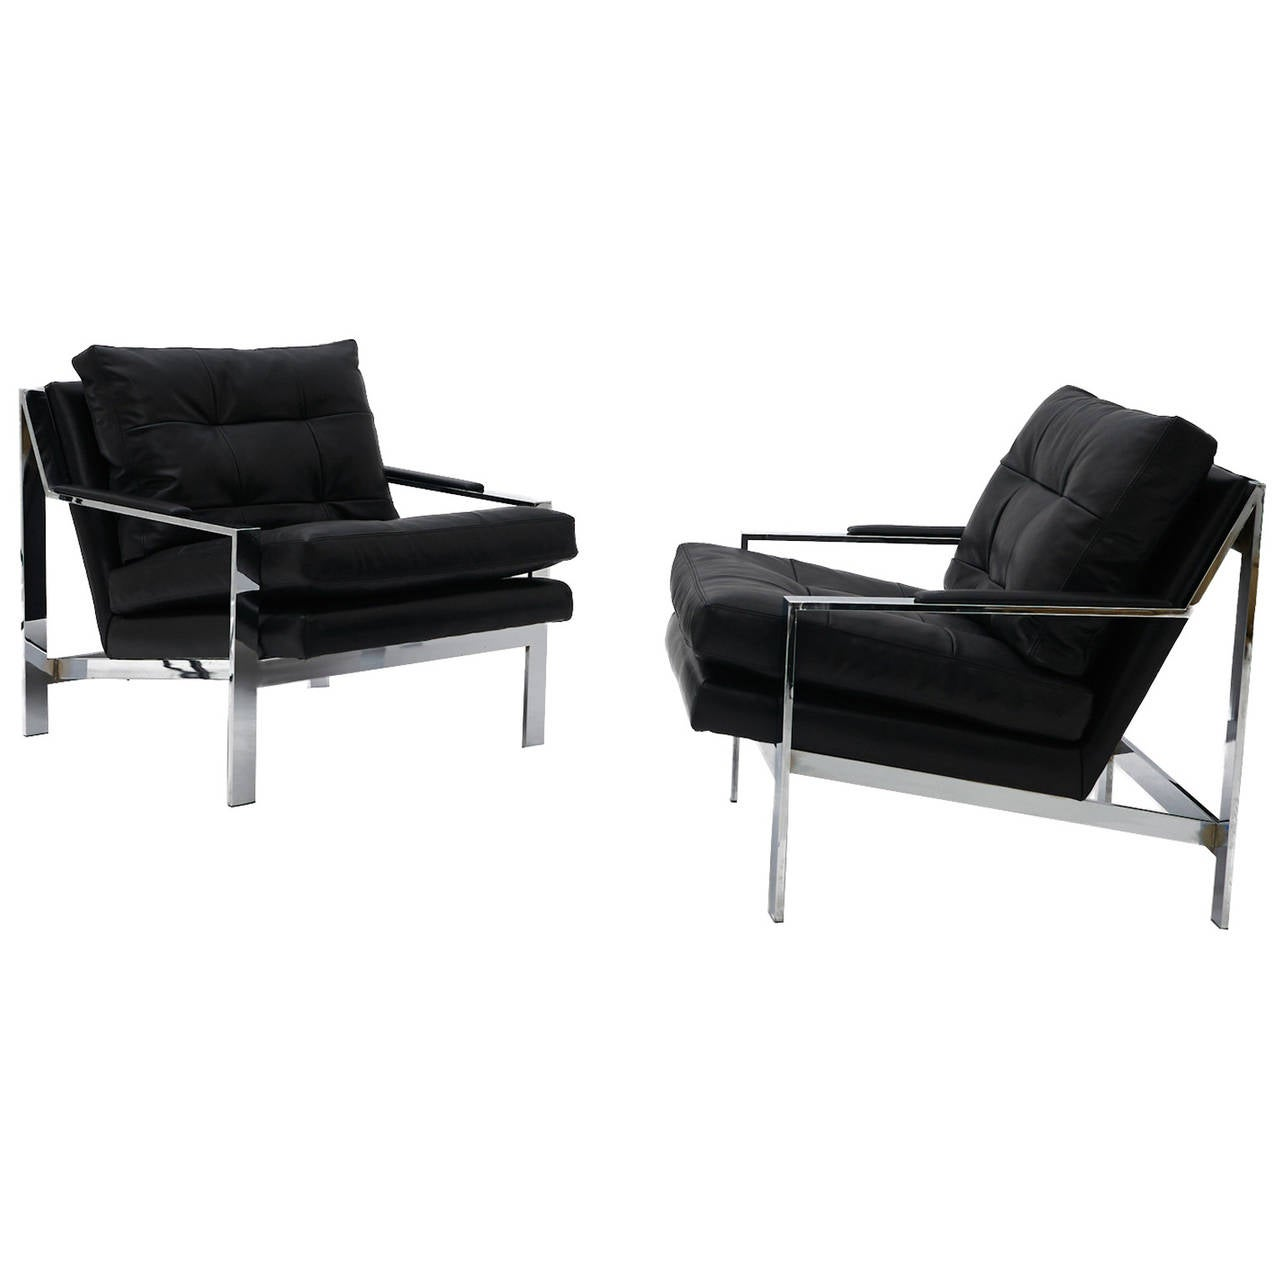 pair of black leather and chrome lounge chairs at 1stdibs. Black Bedroom Furniture Sets. Home Design Ideas